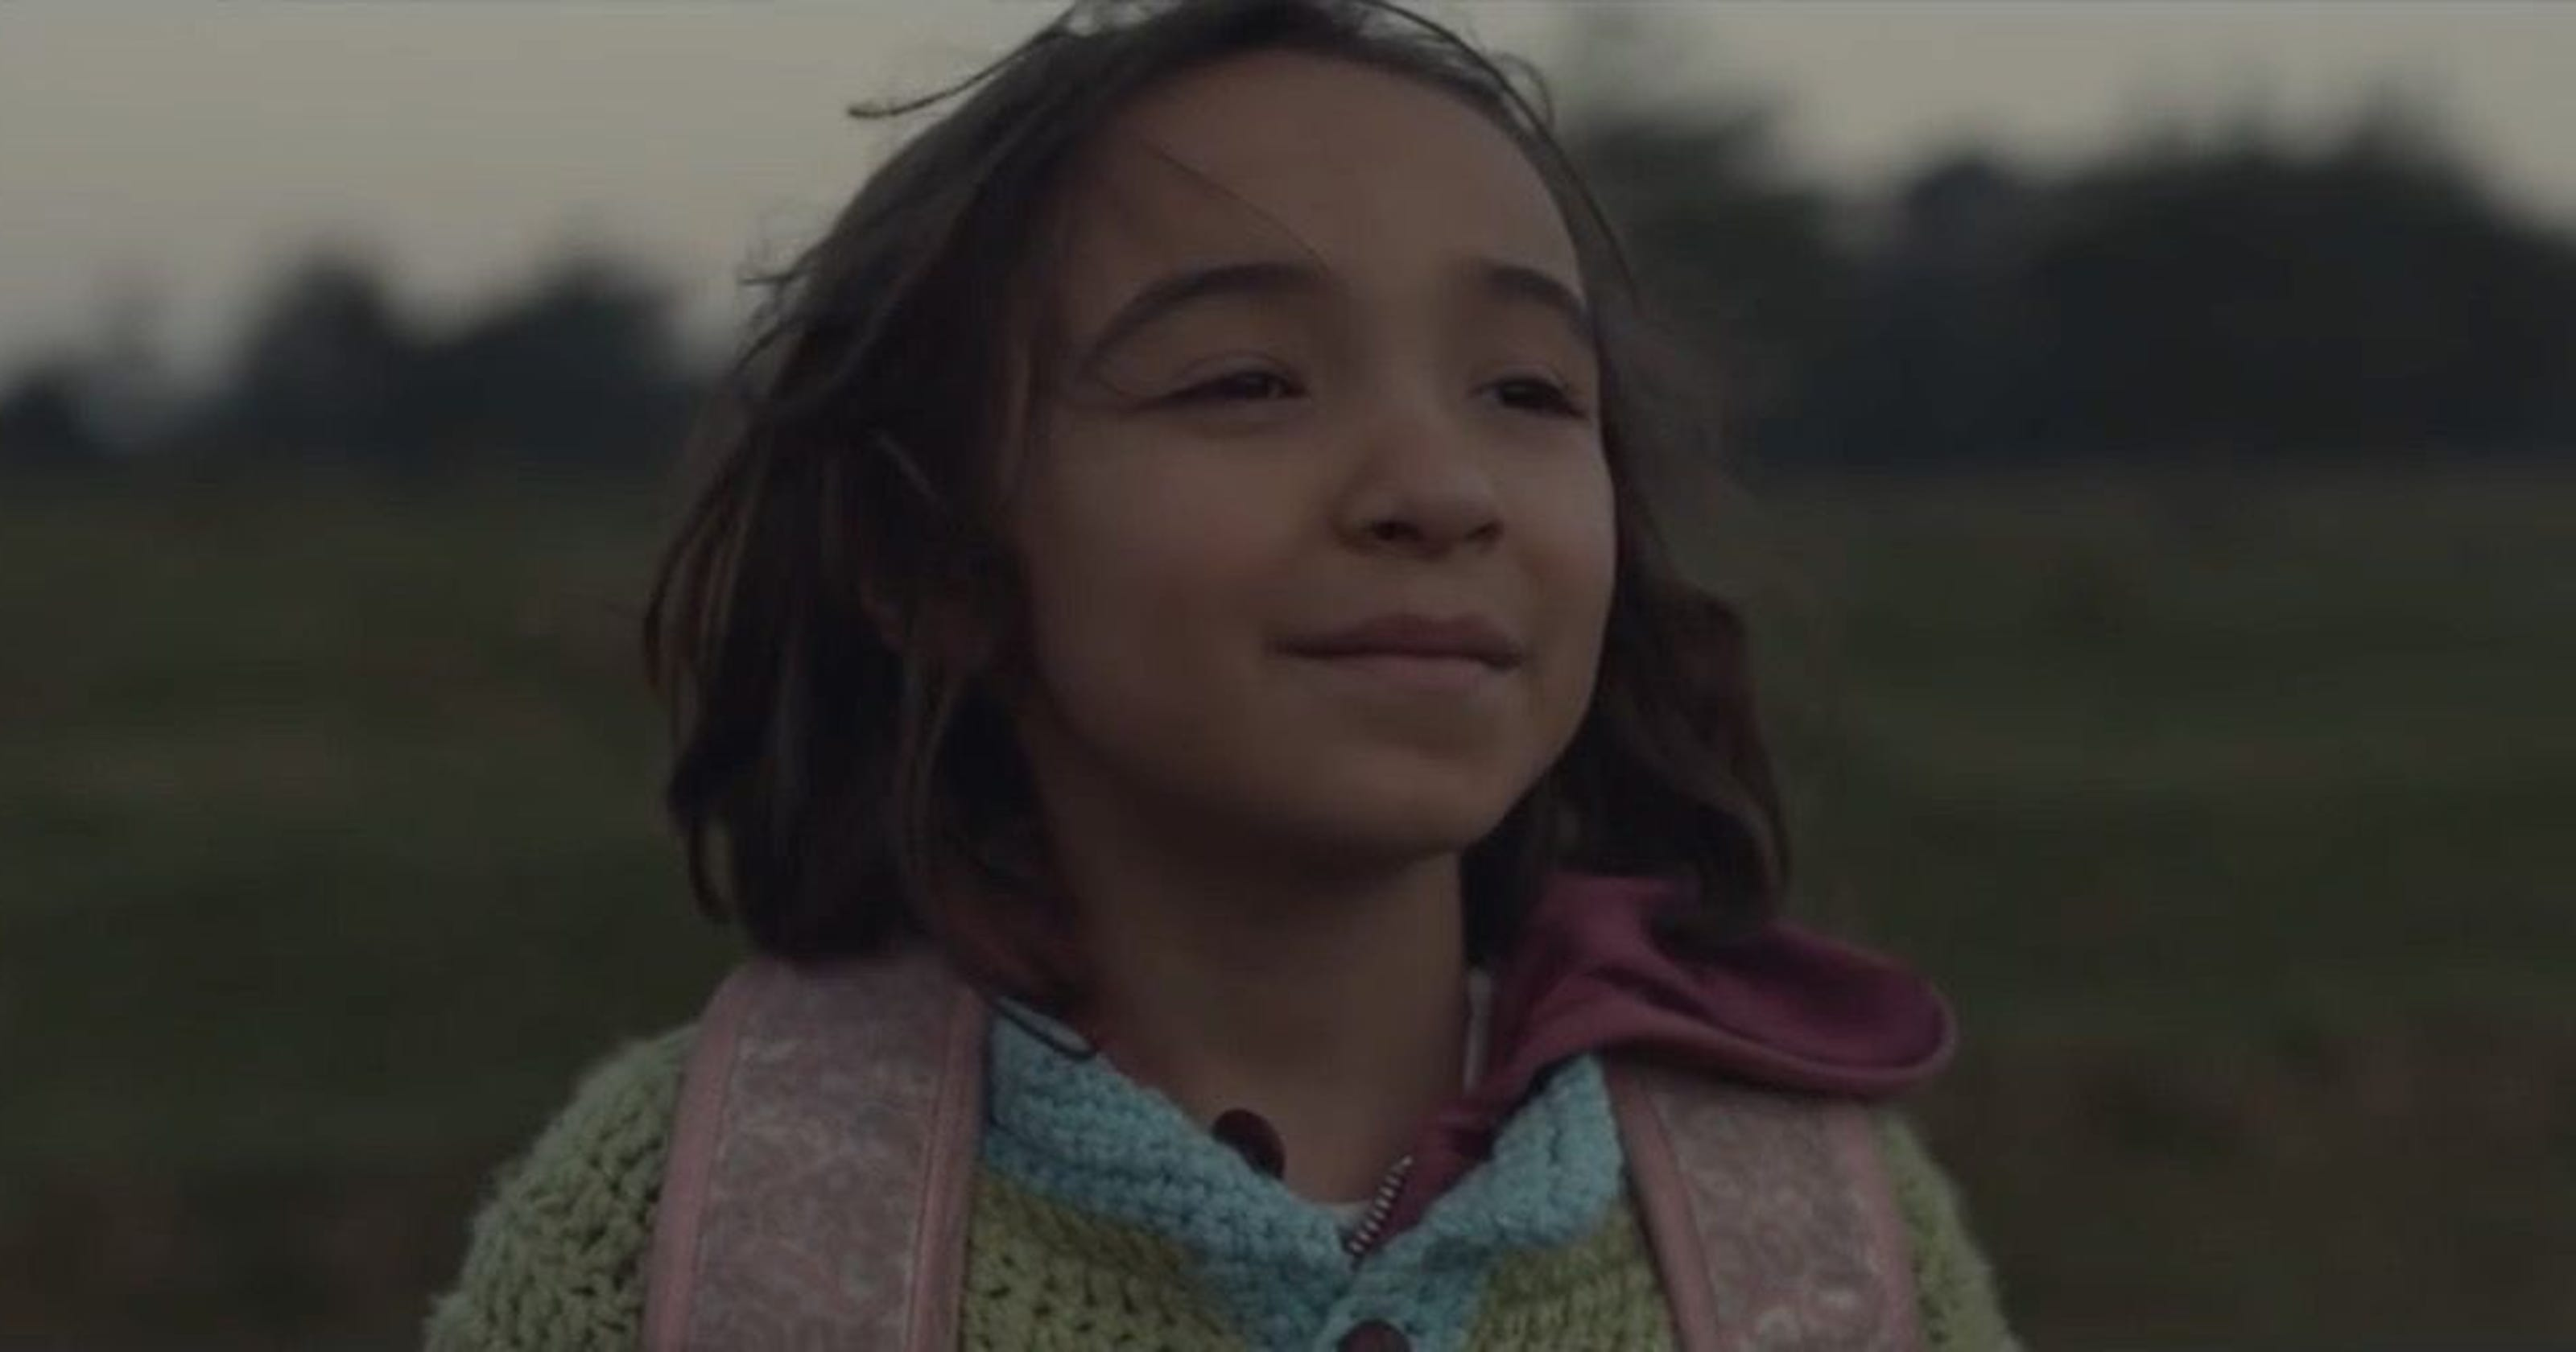 84 Lumber Owner Is Pro Trump Wall Despite Super Bowl Ad